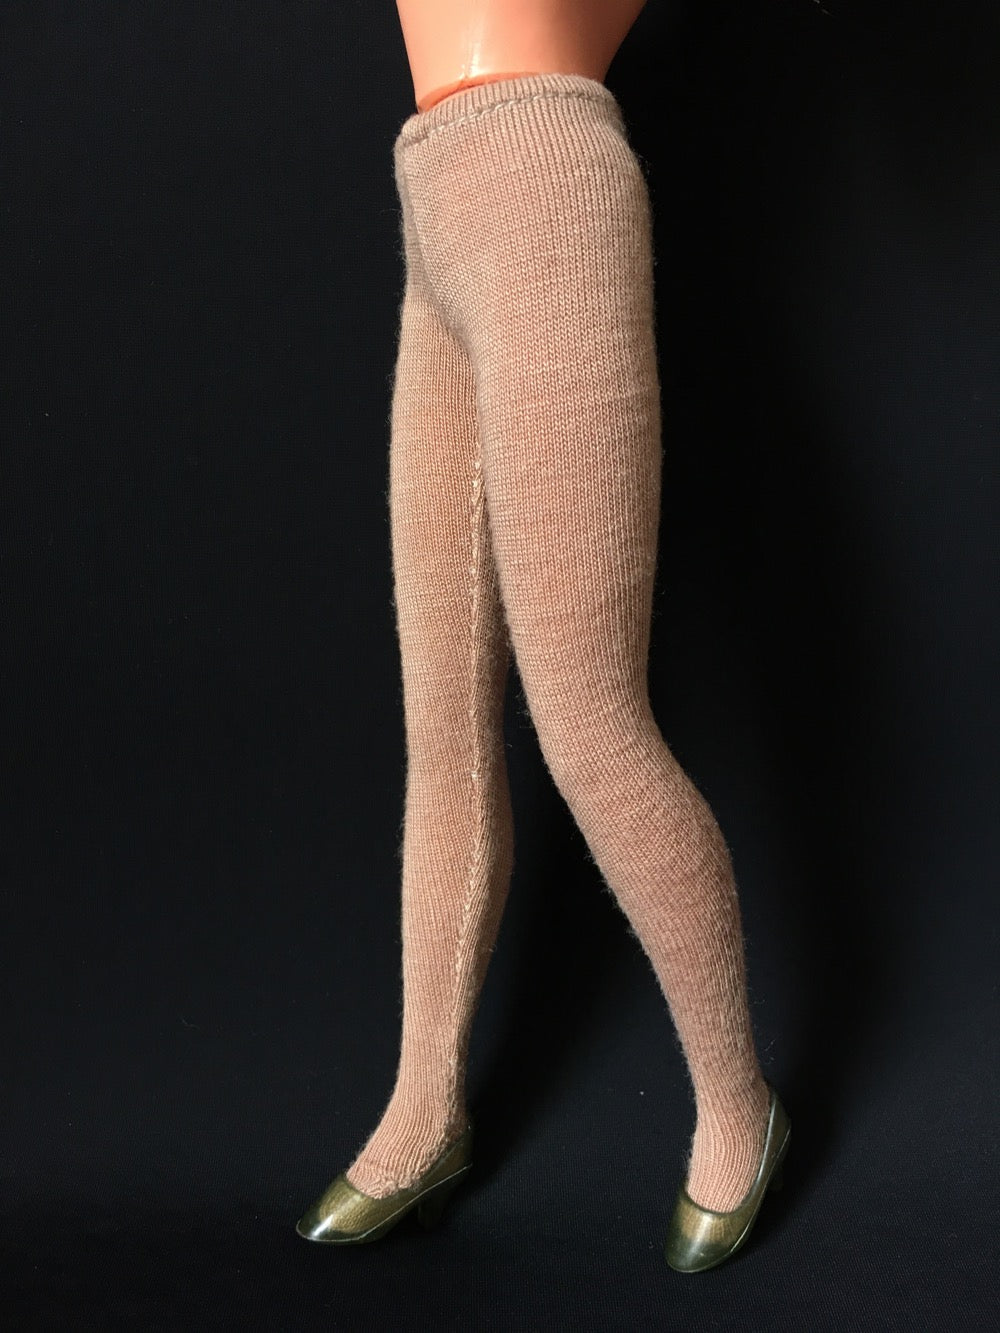 ShimmyShim finished tights in beige